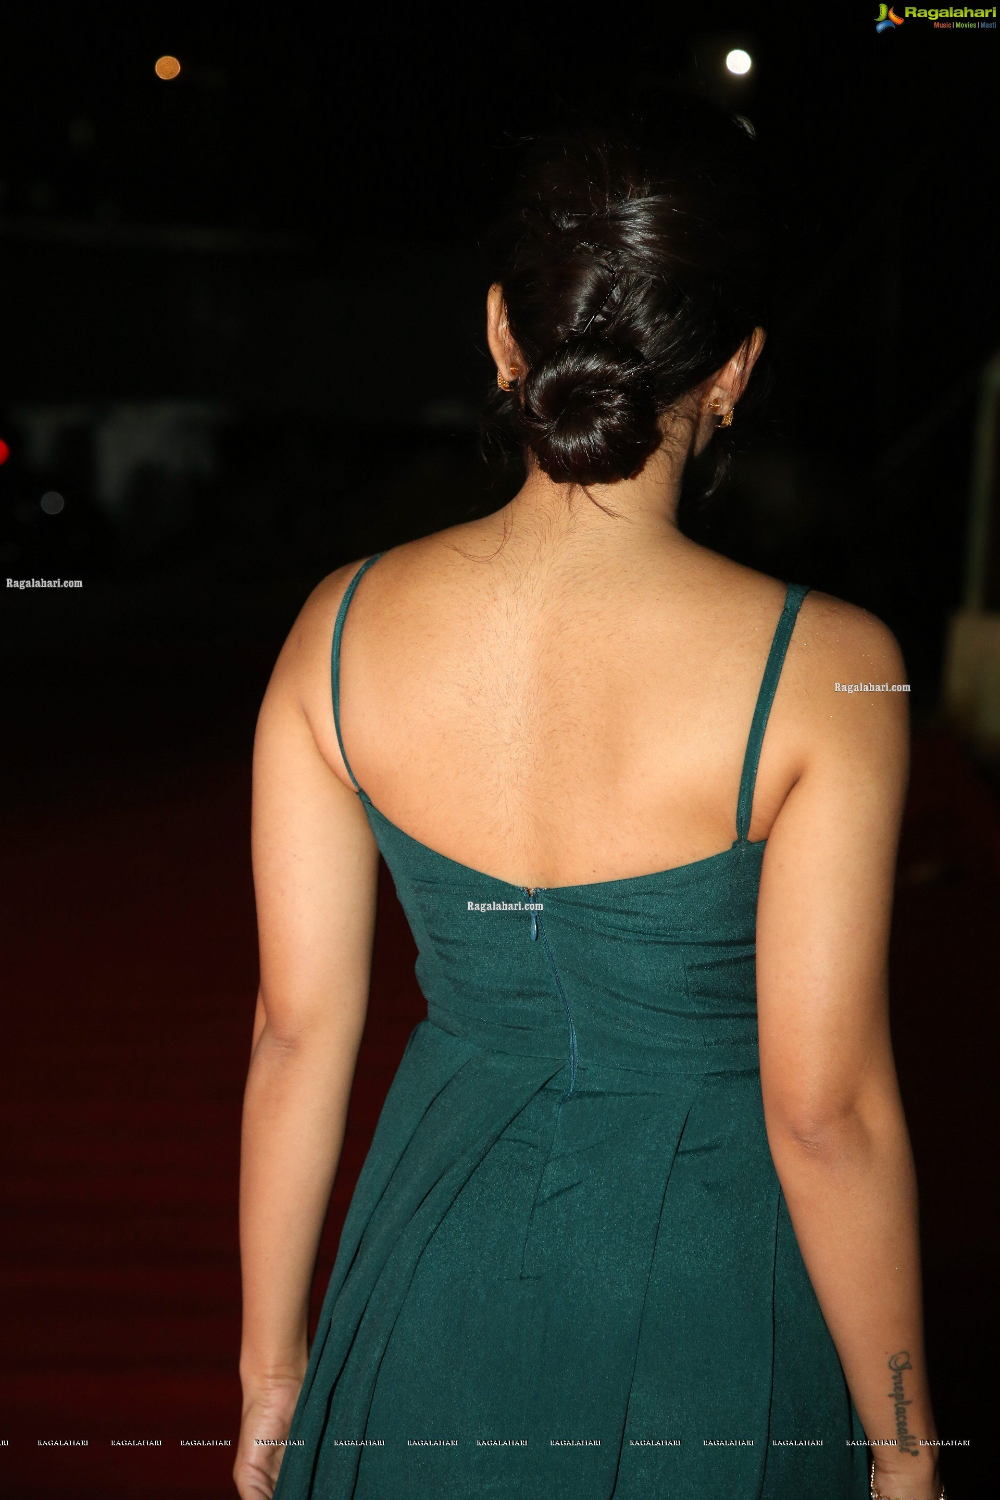 Rashmika Mandanna At Bheeshma Movie Pre Release Event Hd In 2020 Sleeveless Gown Backless Actresses